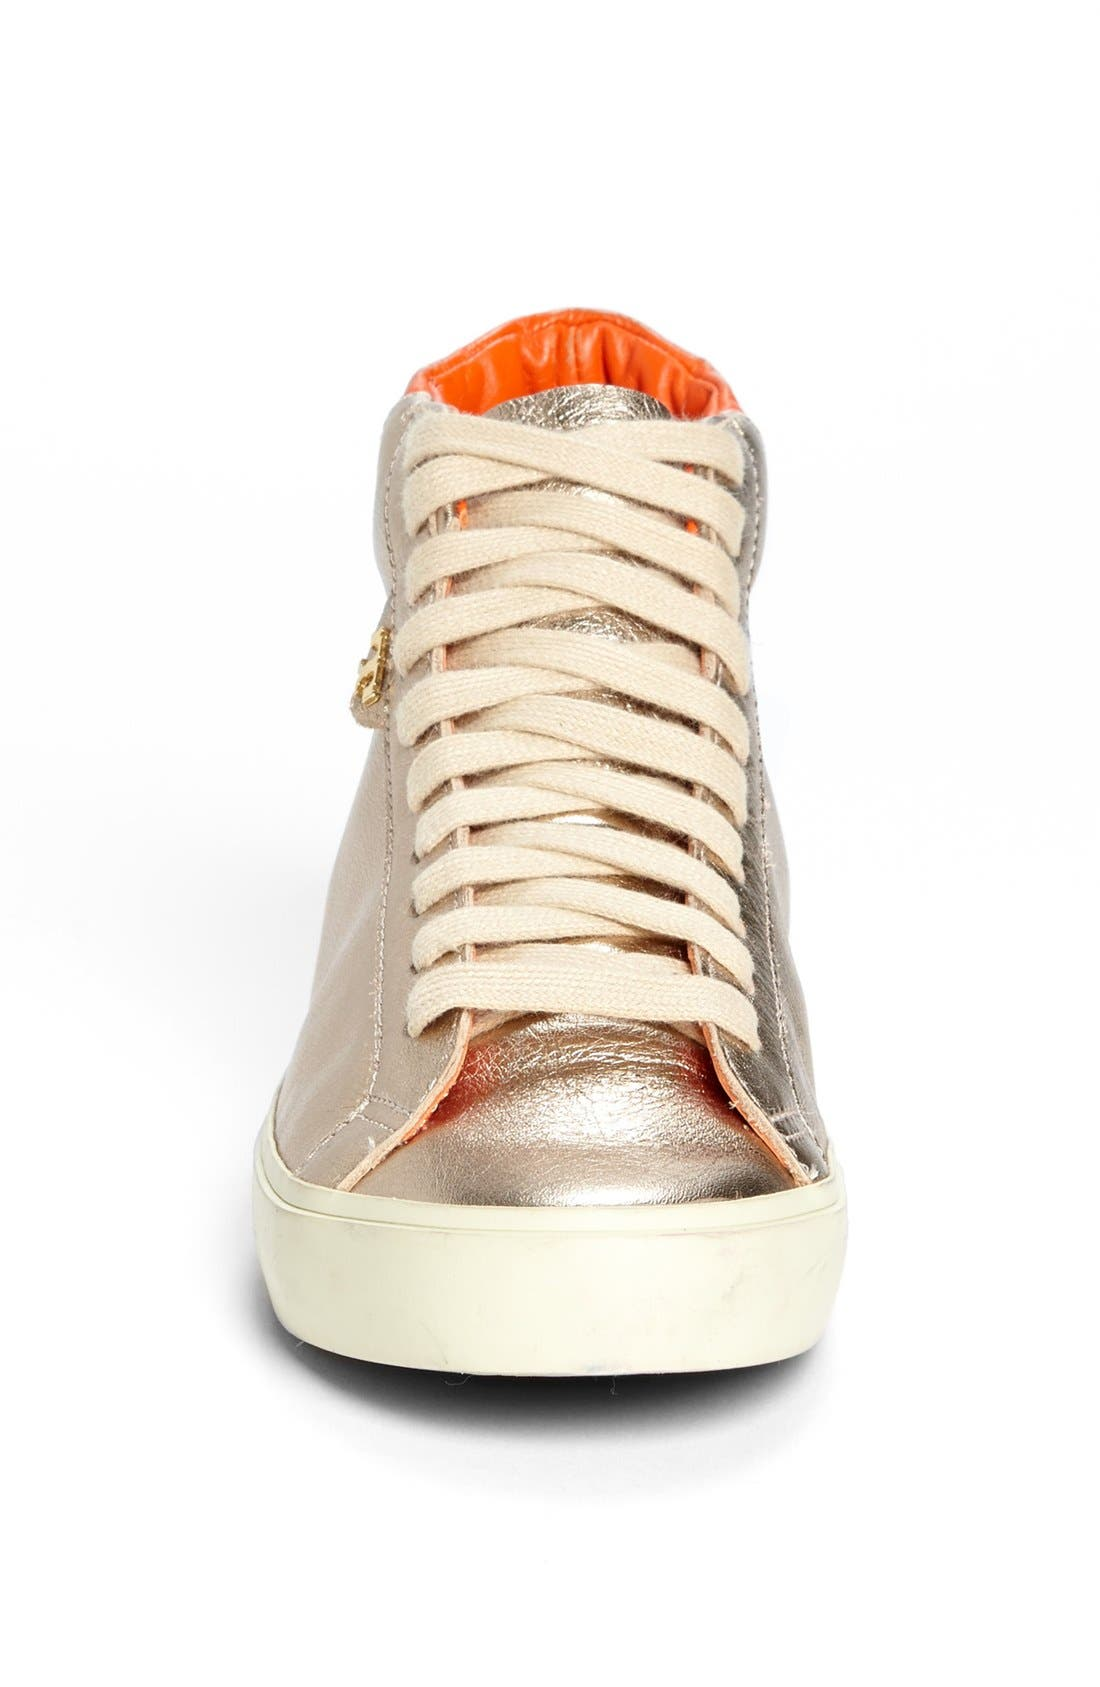 Alternate Image 3  - Tory Burch 'Caleb' High Top Leather Sneaker